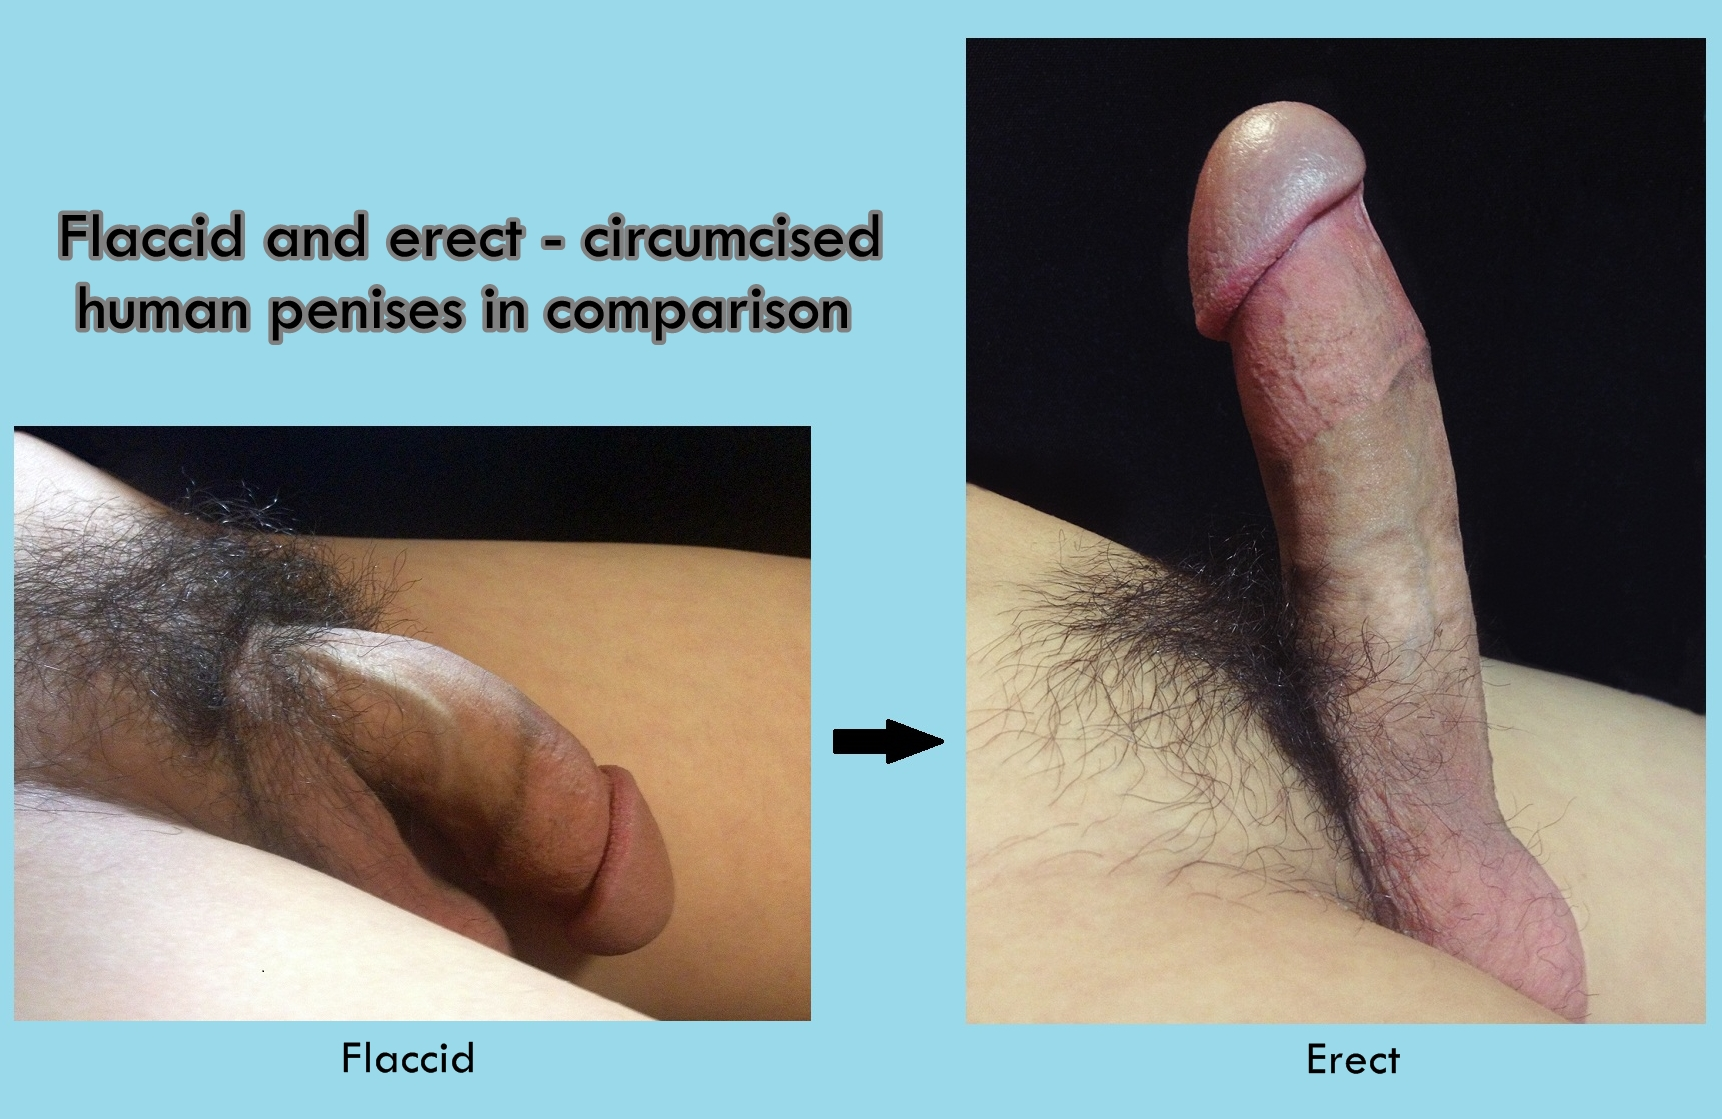 different-styles-in-penis-circumcision-fire-nude-gif